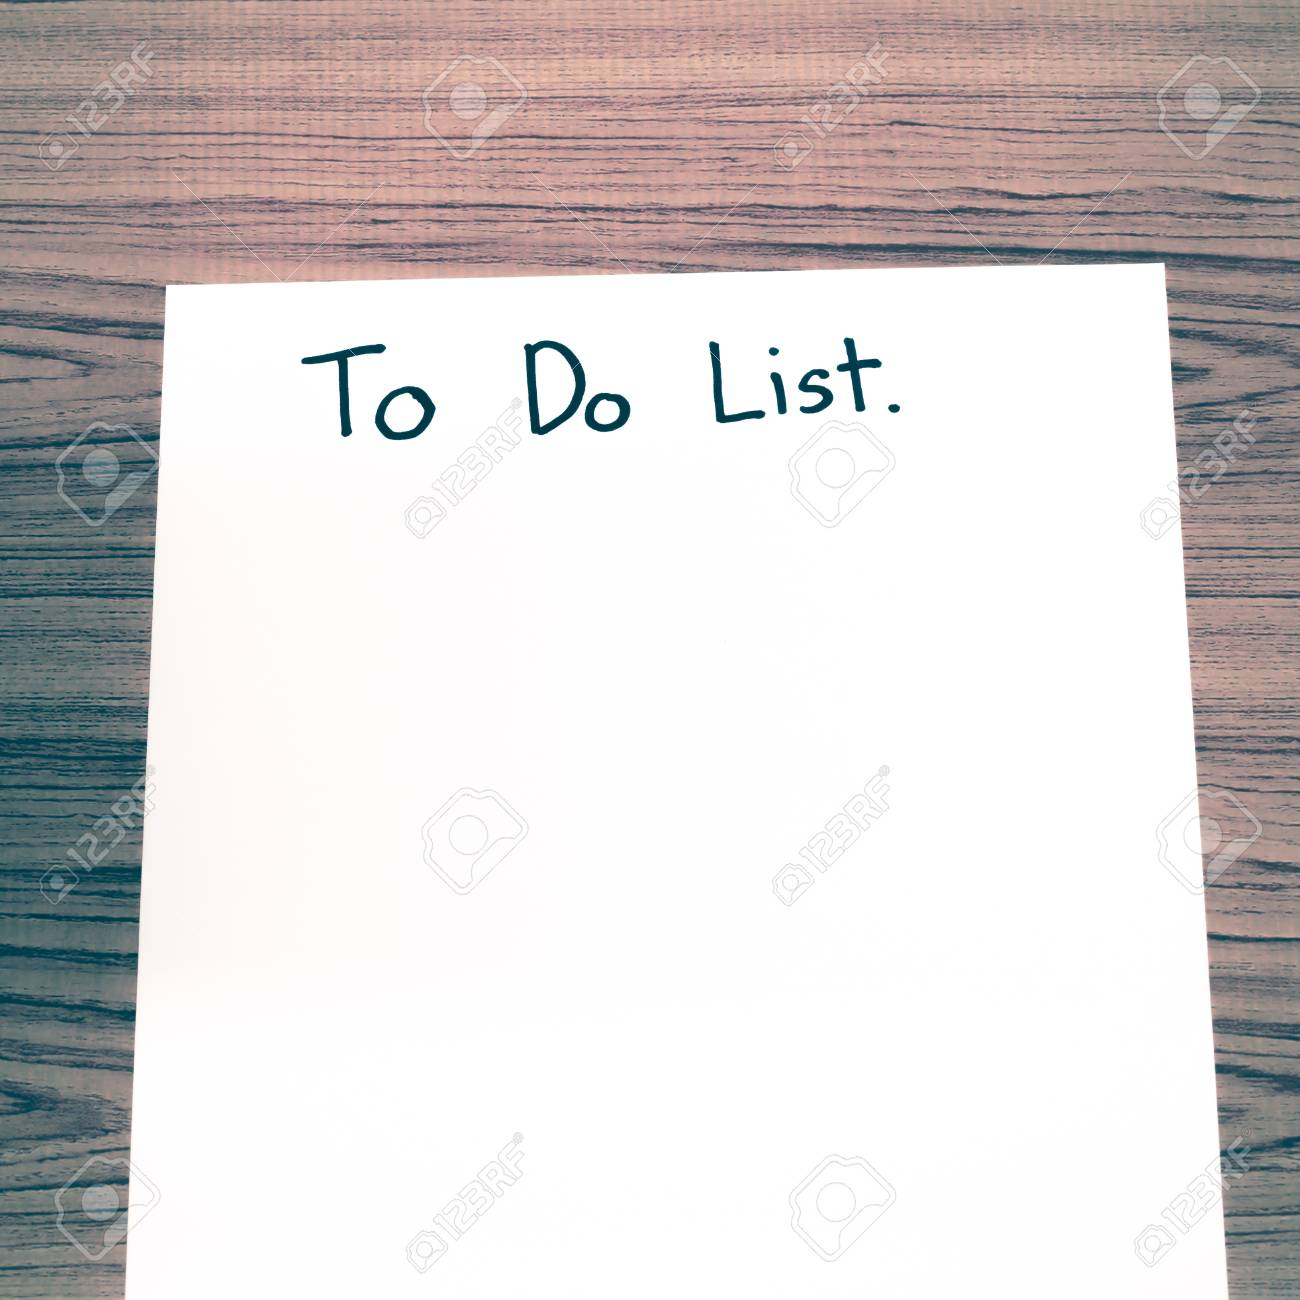 paper write to do list word on wood background vintage style stock